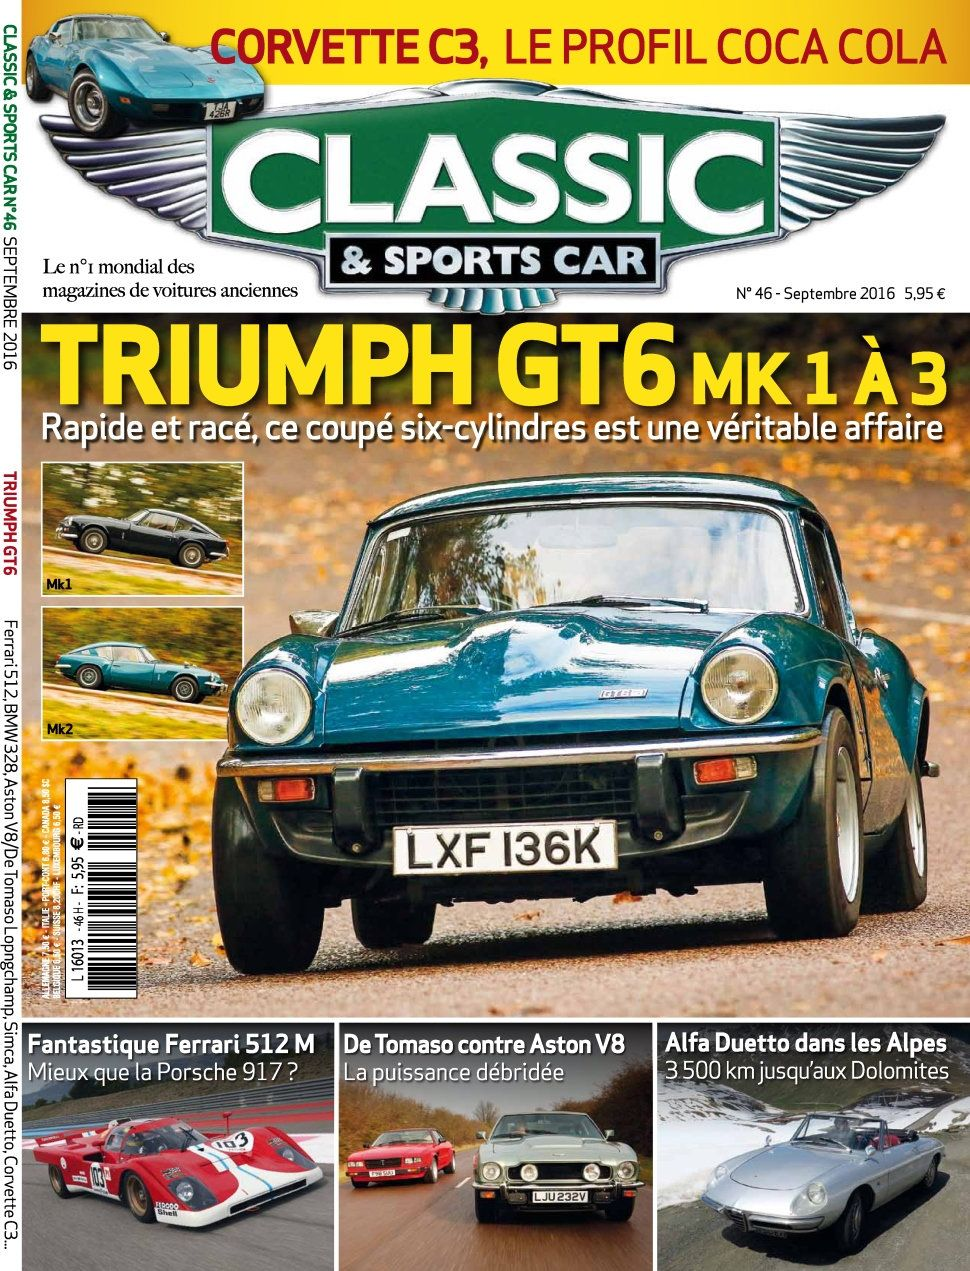 Classic & Sports Car 46 - Septembre 2016